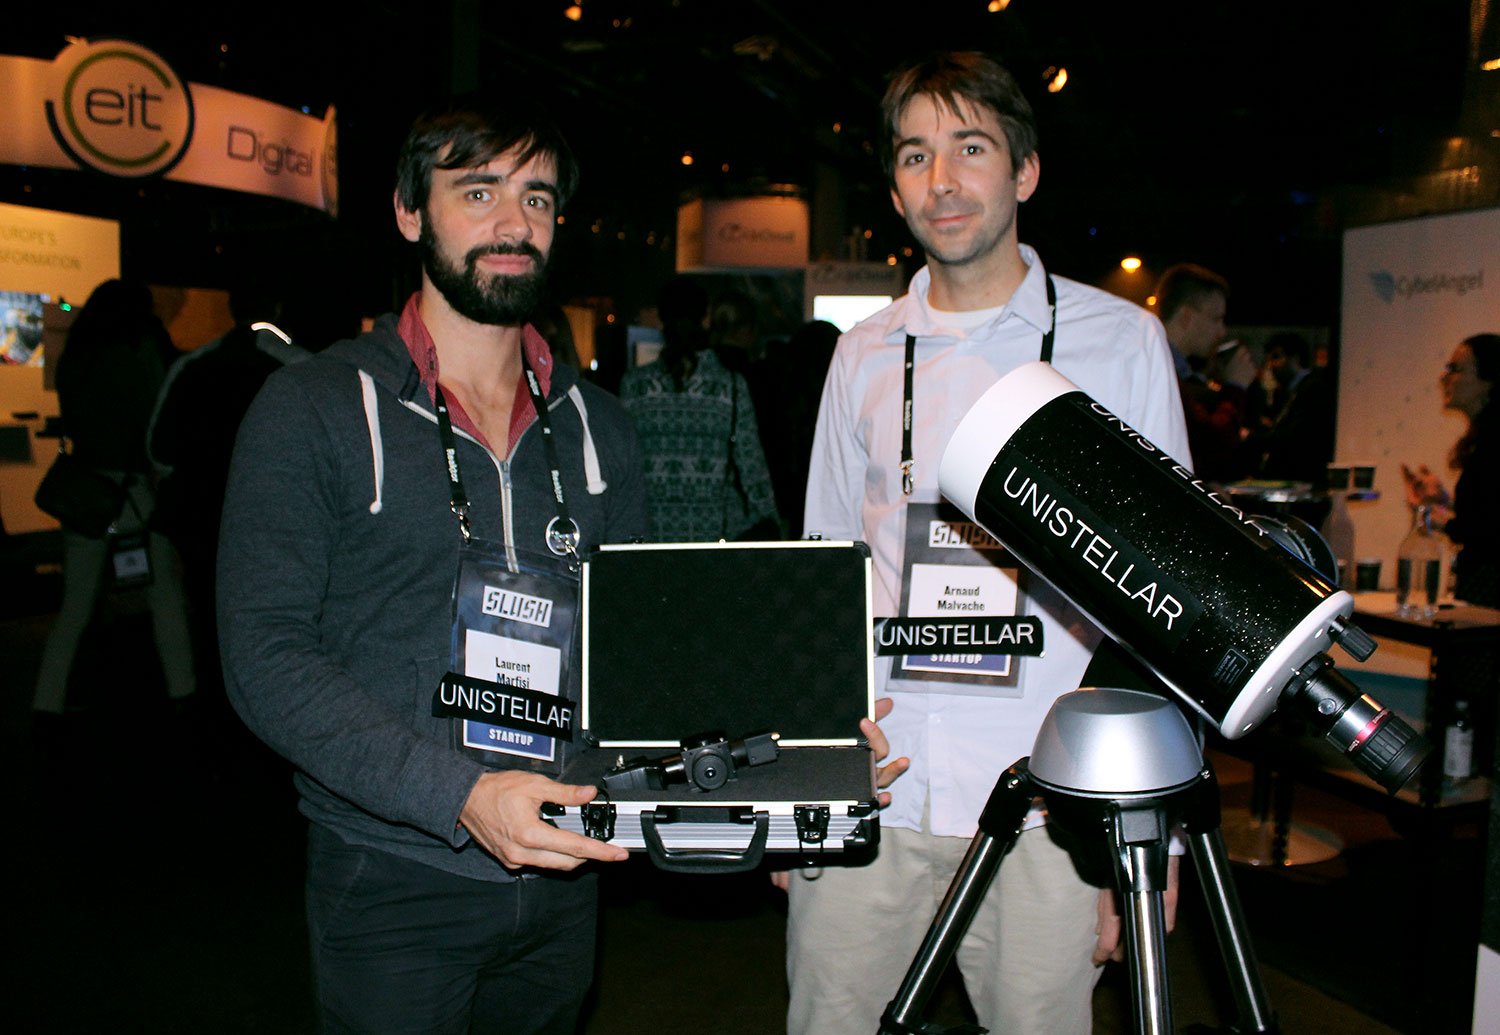 French startup Unistellar with their amplified vision telescope